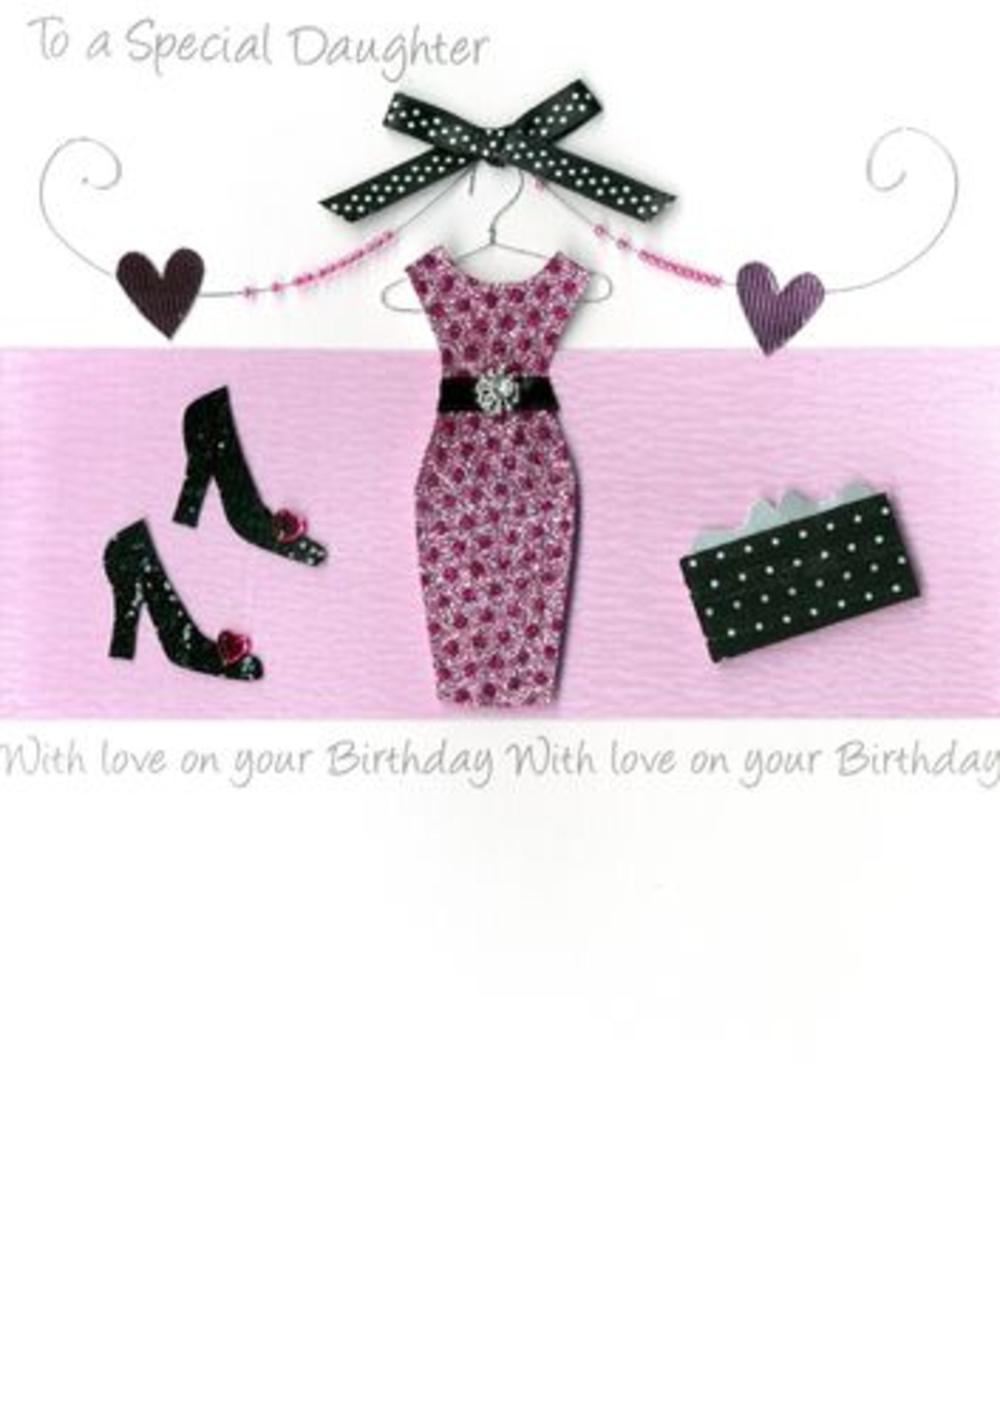 Large Luxury Special Daughter Birthday Greeting Card